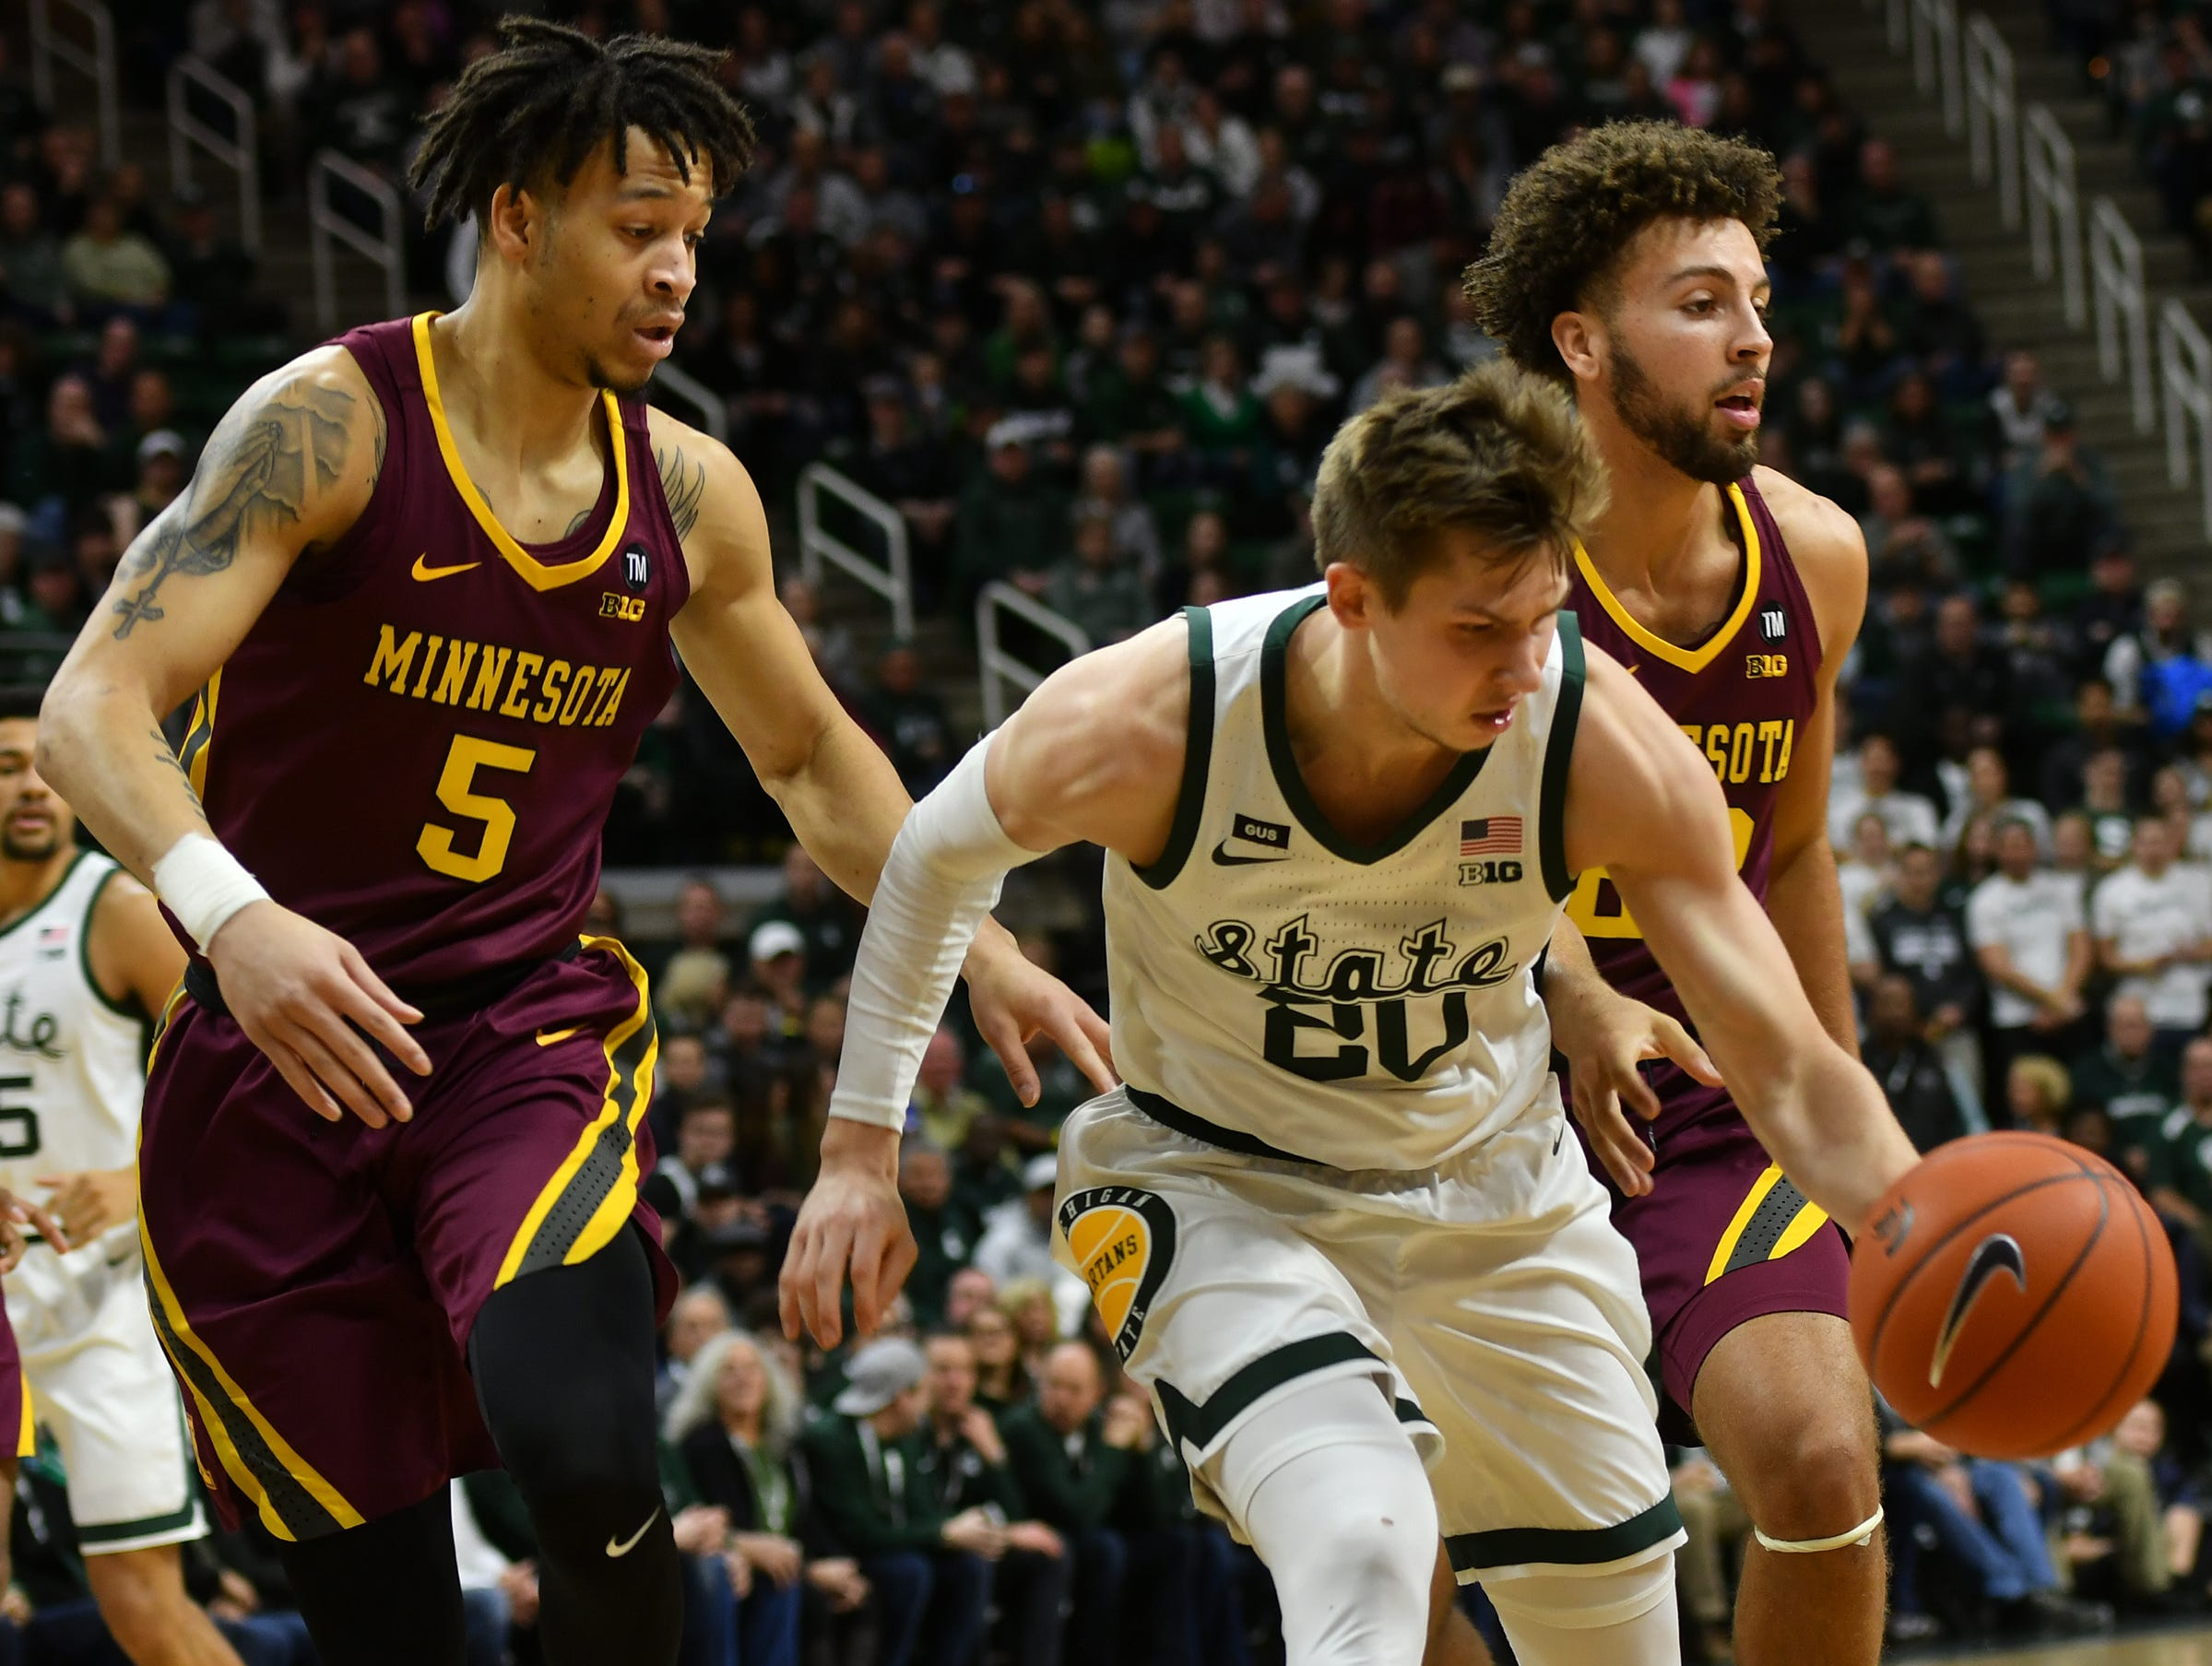 MSU's Matt McQuaid (20) works his way around Minnesota's Amir Coffey (5) Saturday, Feb. 9, 2019. MSU won 79-55.